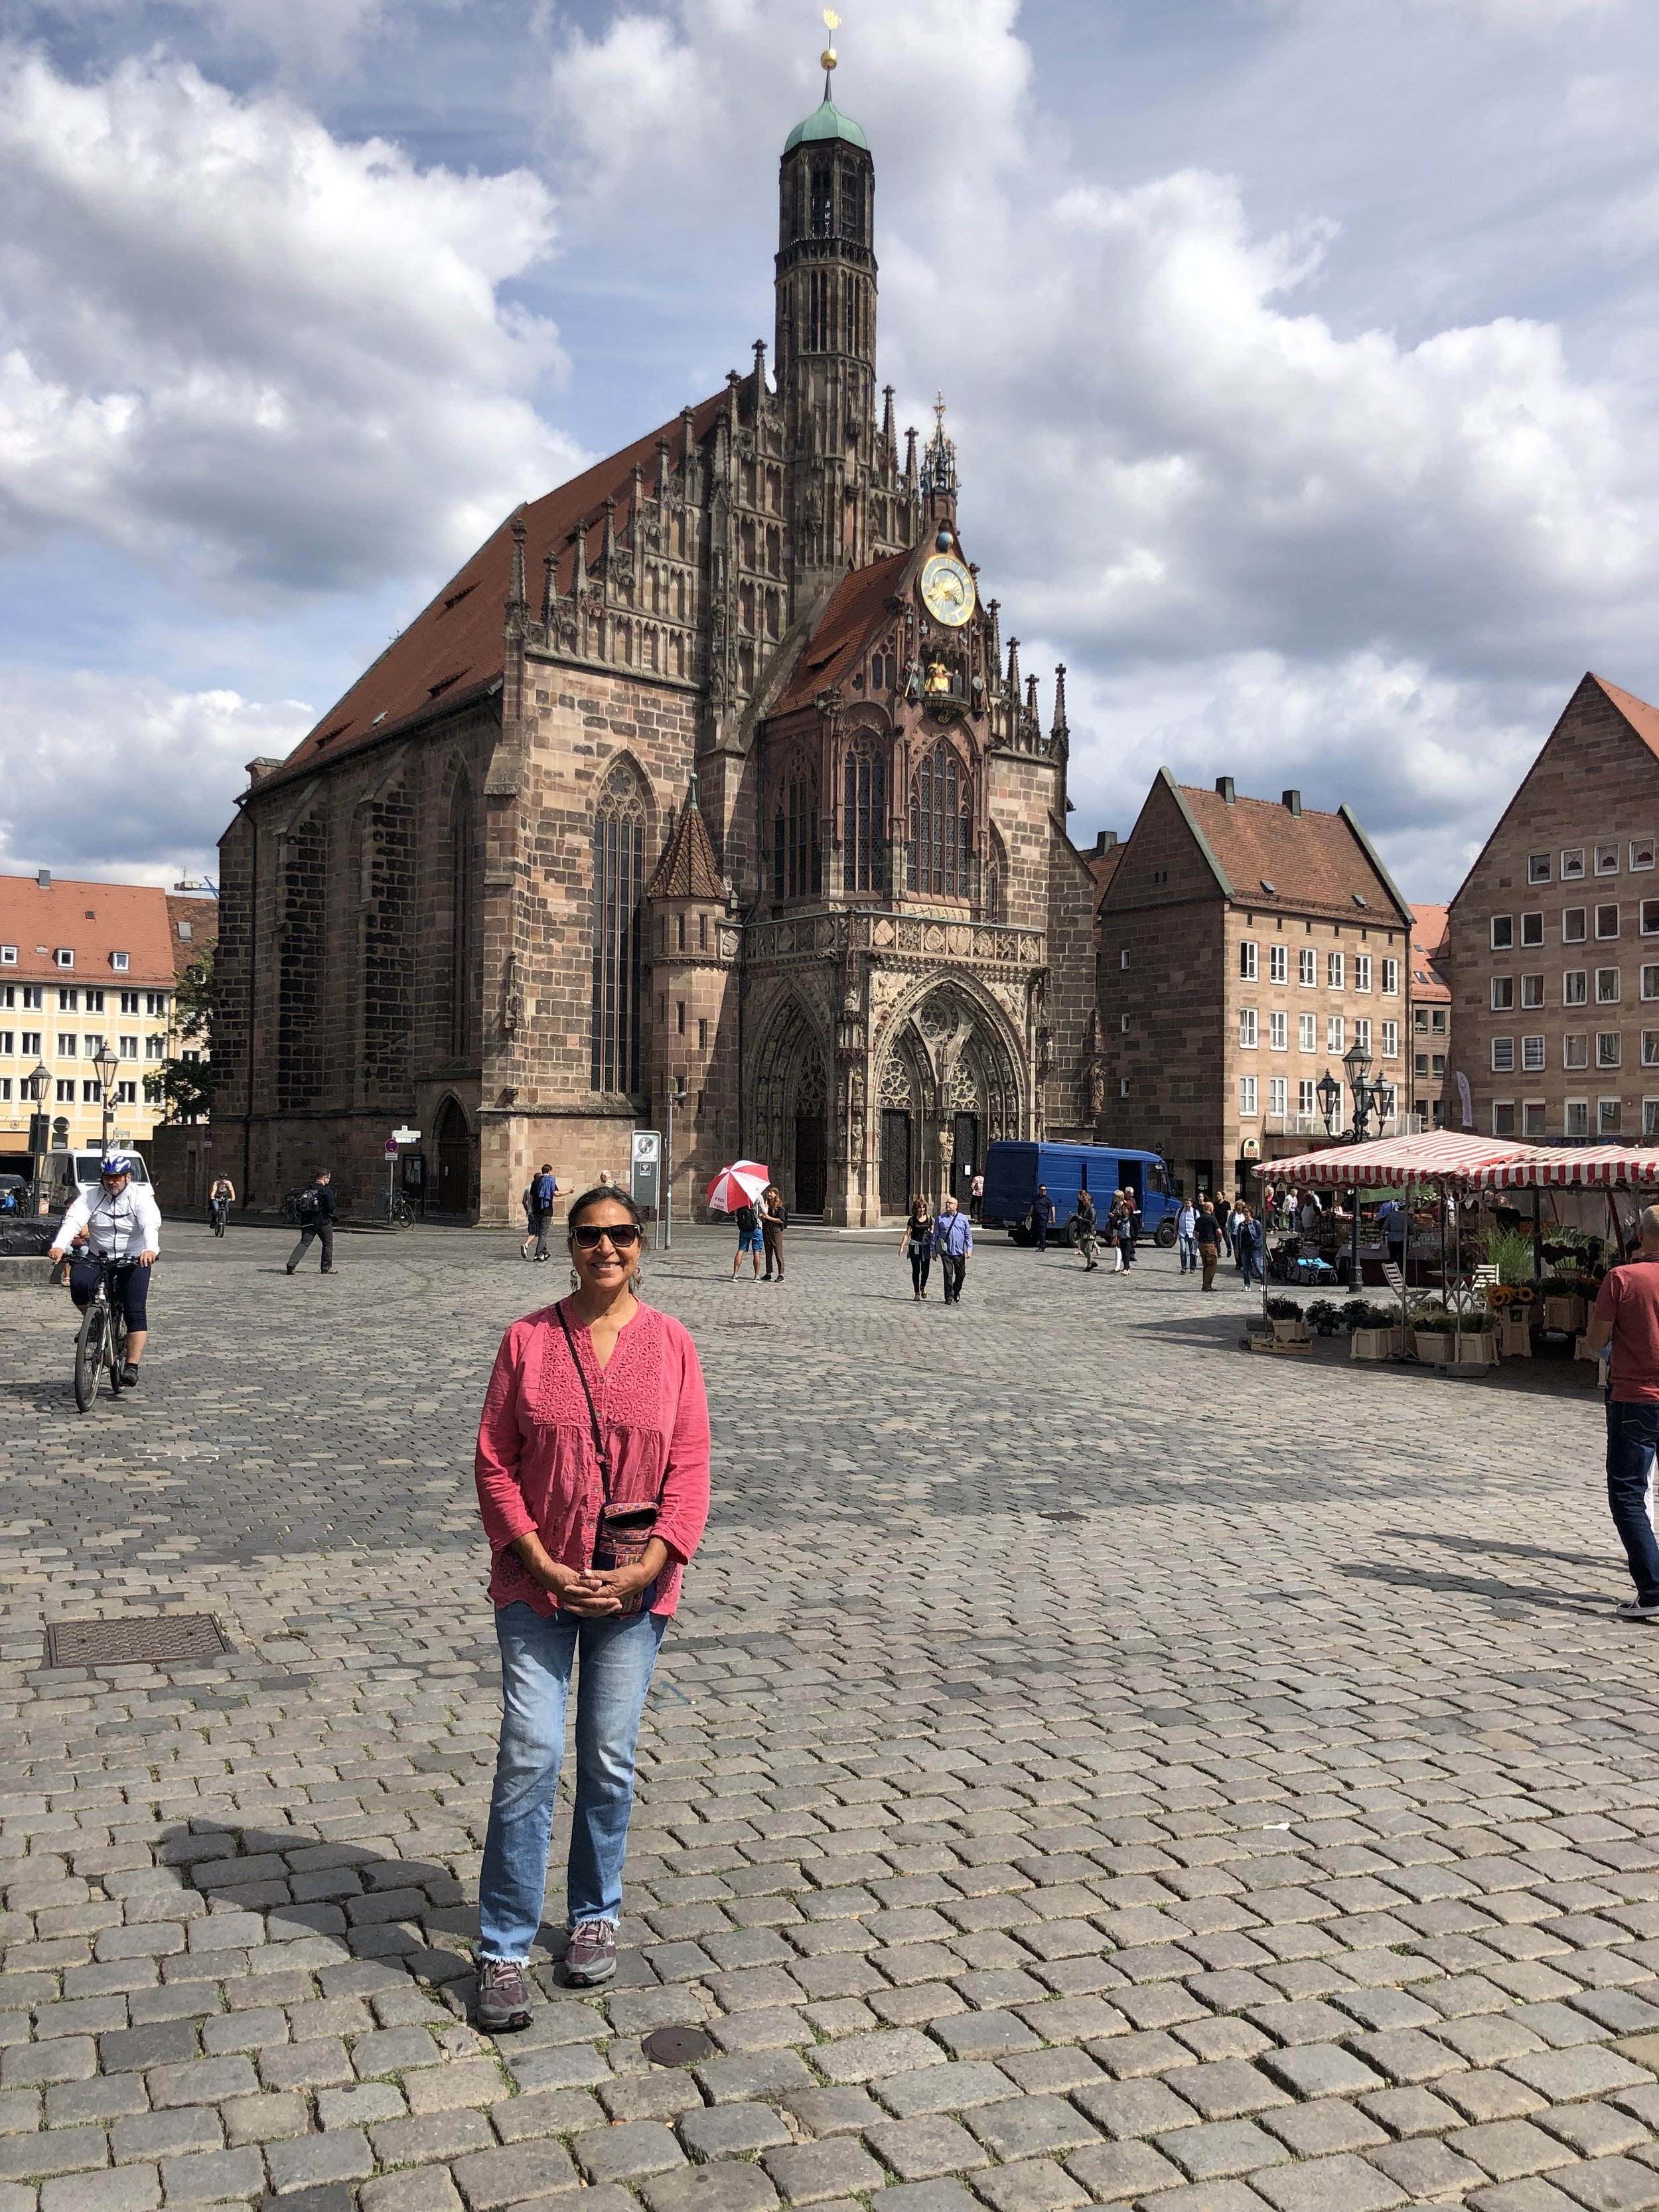 Nurnberg was an especially nice city with lots of things to see and do. Here Alena is in the main plaza of the old city in front of an Catholic Church that is hundreds of years old.